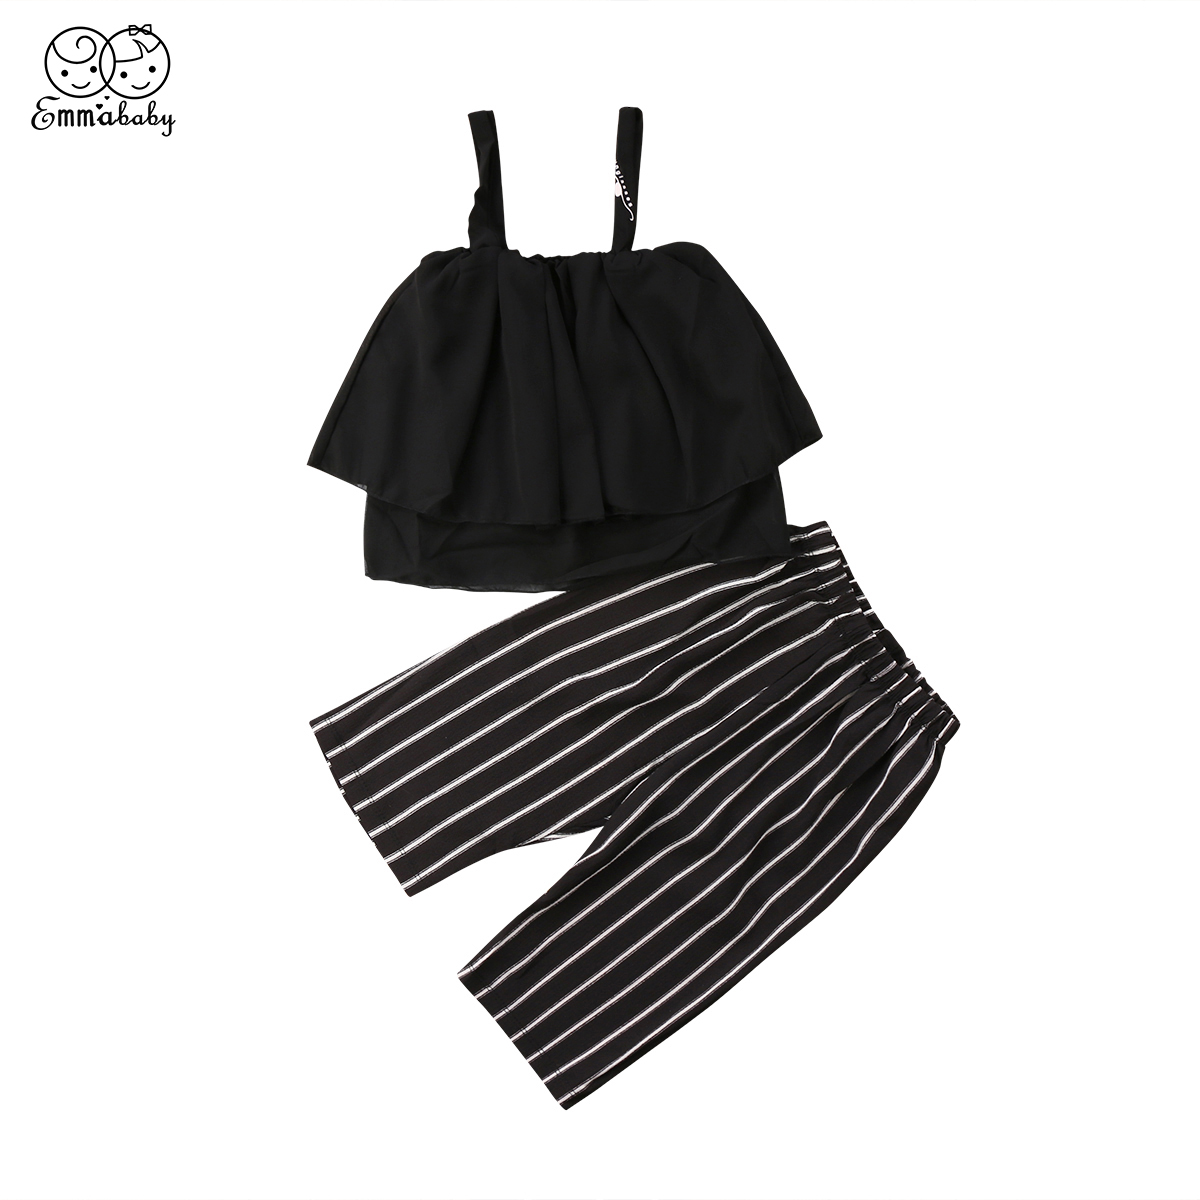 2018 new summer fashion Kids Baby Girls Chiffon off shoulder black Tops+Striped Pants Trousers 2pcs sweet Outfits Set Clothes